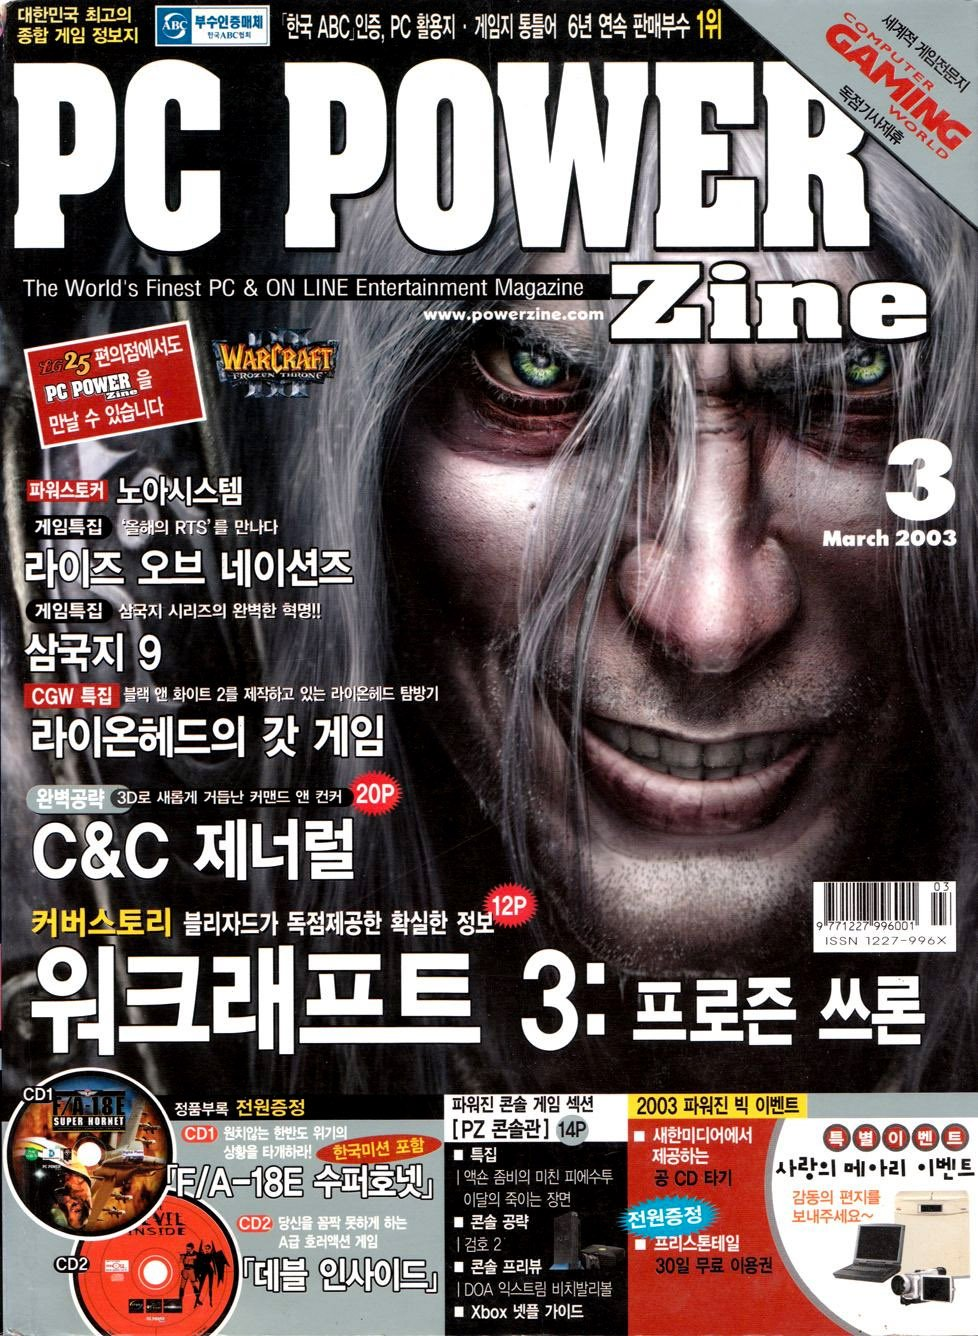 PC Power Zine Issue 092 (March 2003)